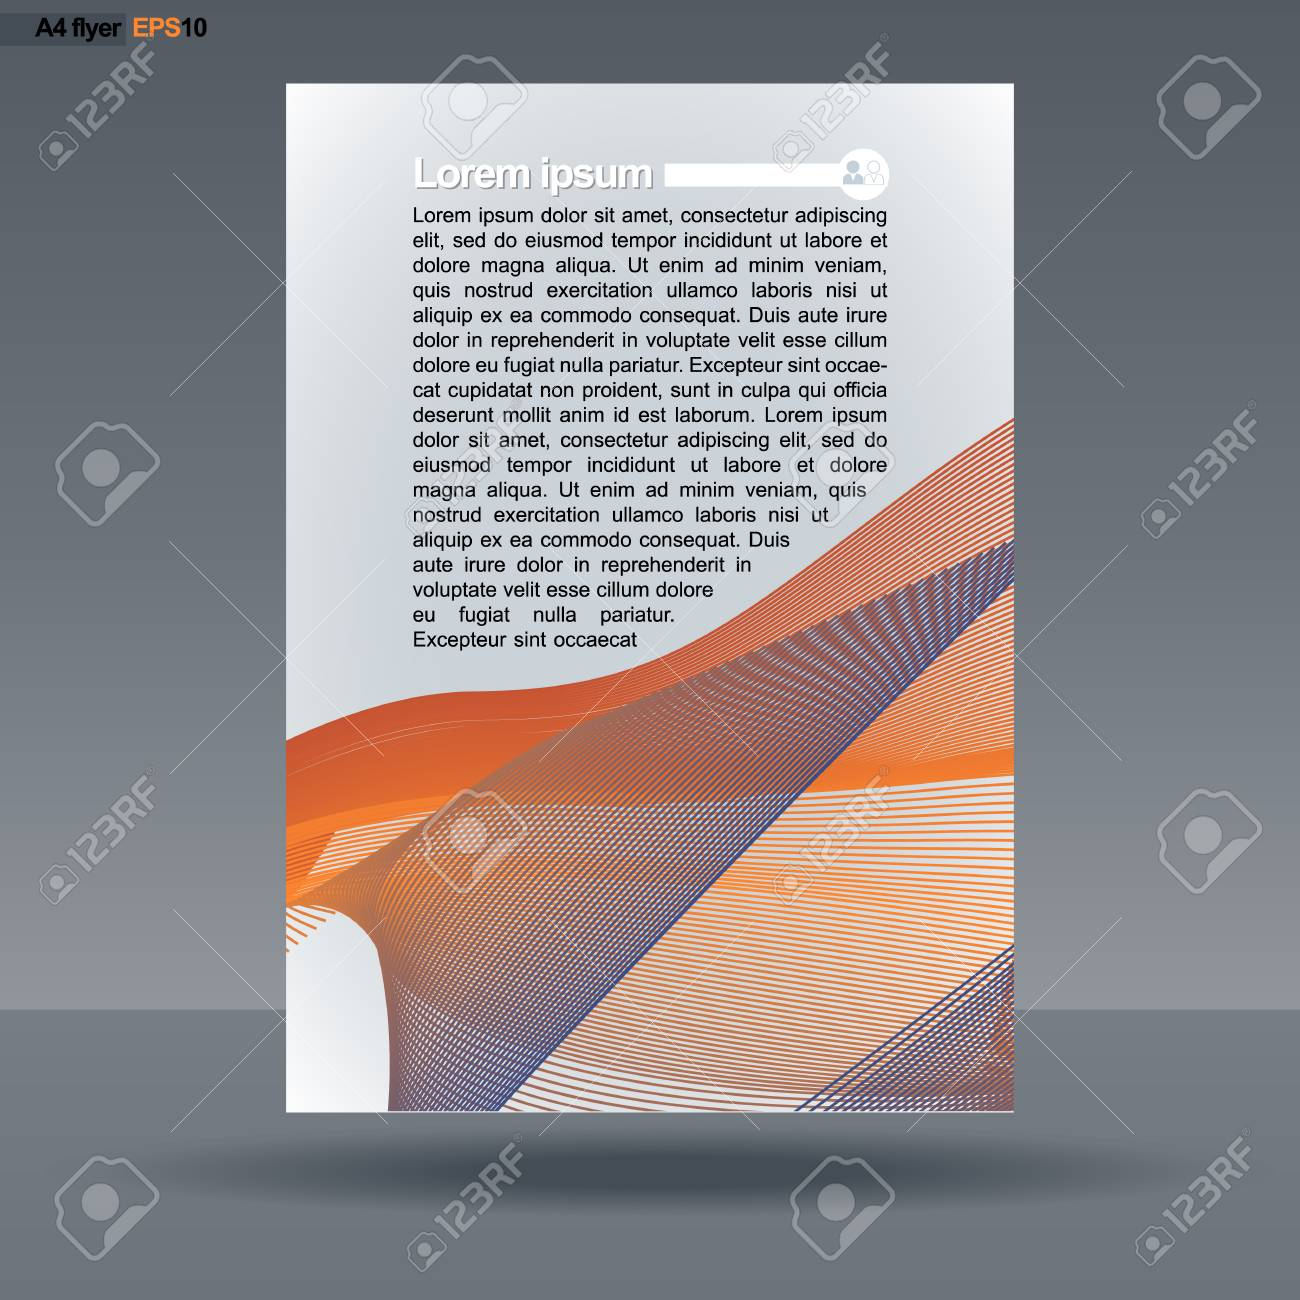 Abstract Print A4 Design With Colored Lines For Flyers Banners Or Posters People